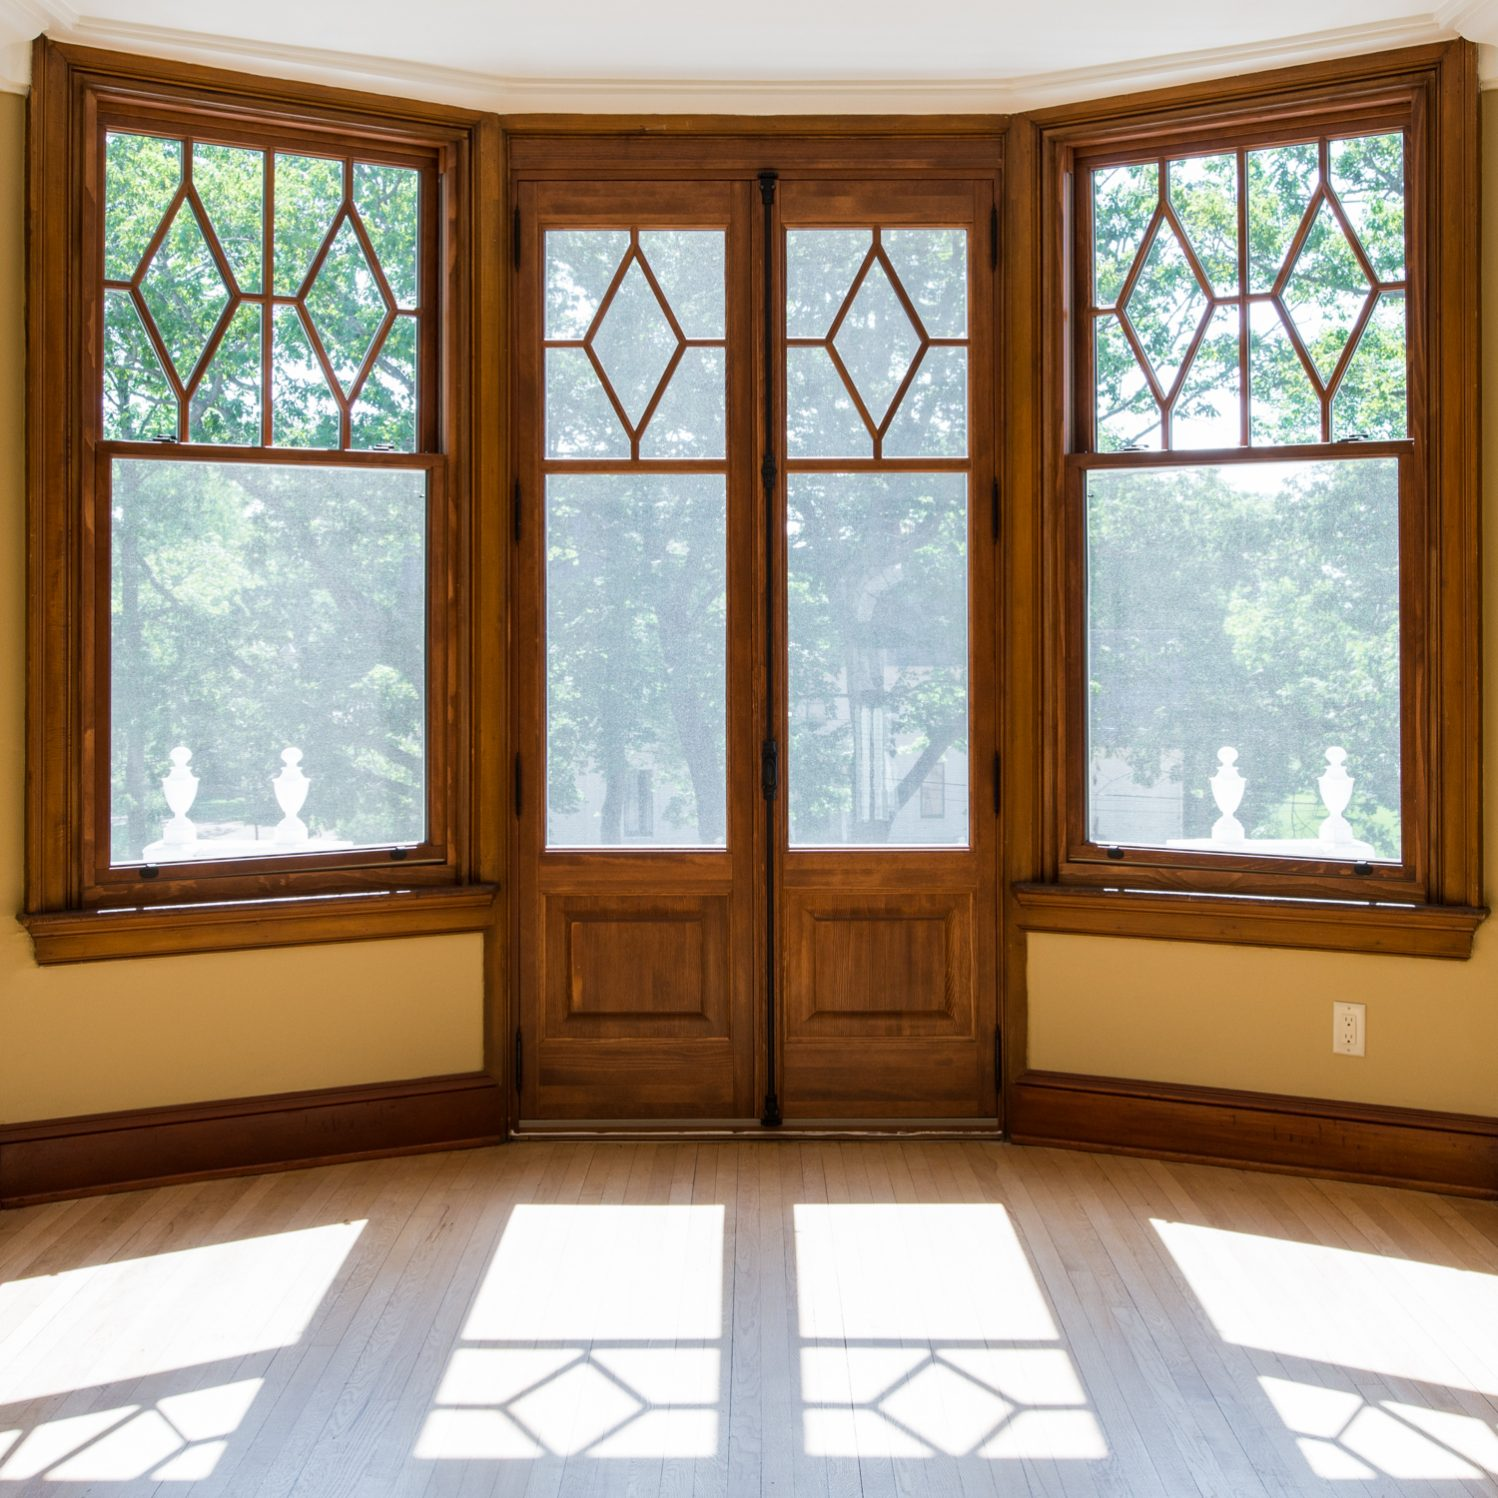 Two windows and door with sunlight pouring in